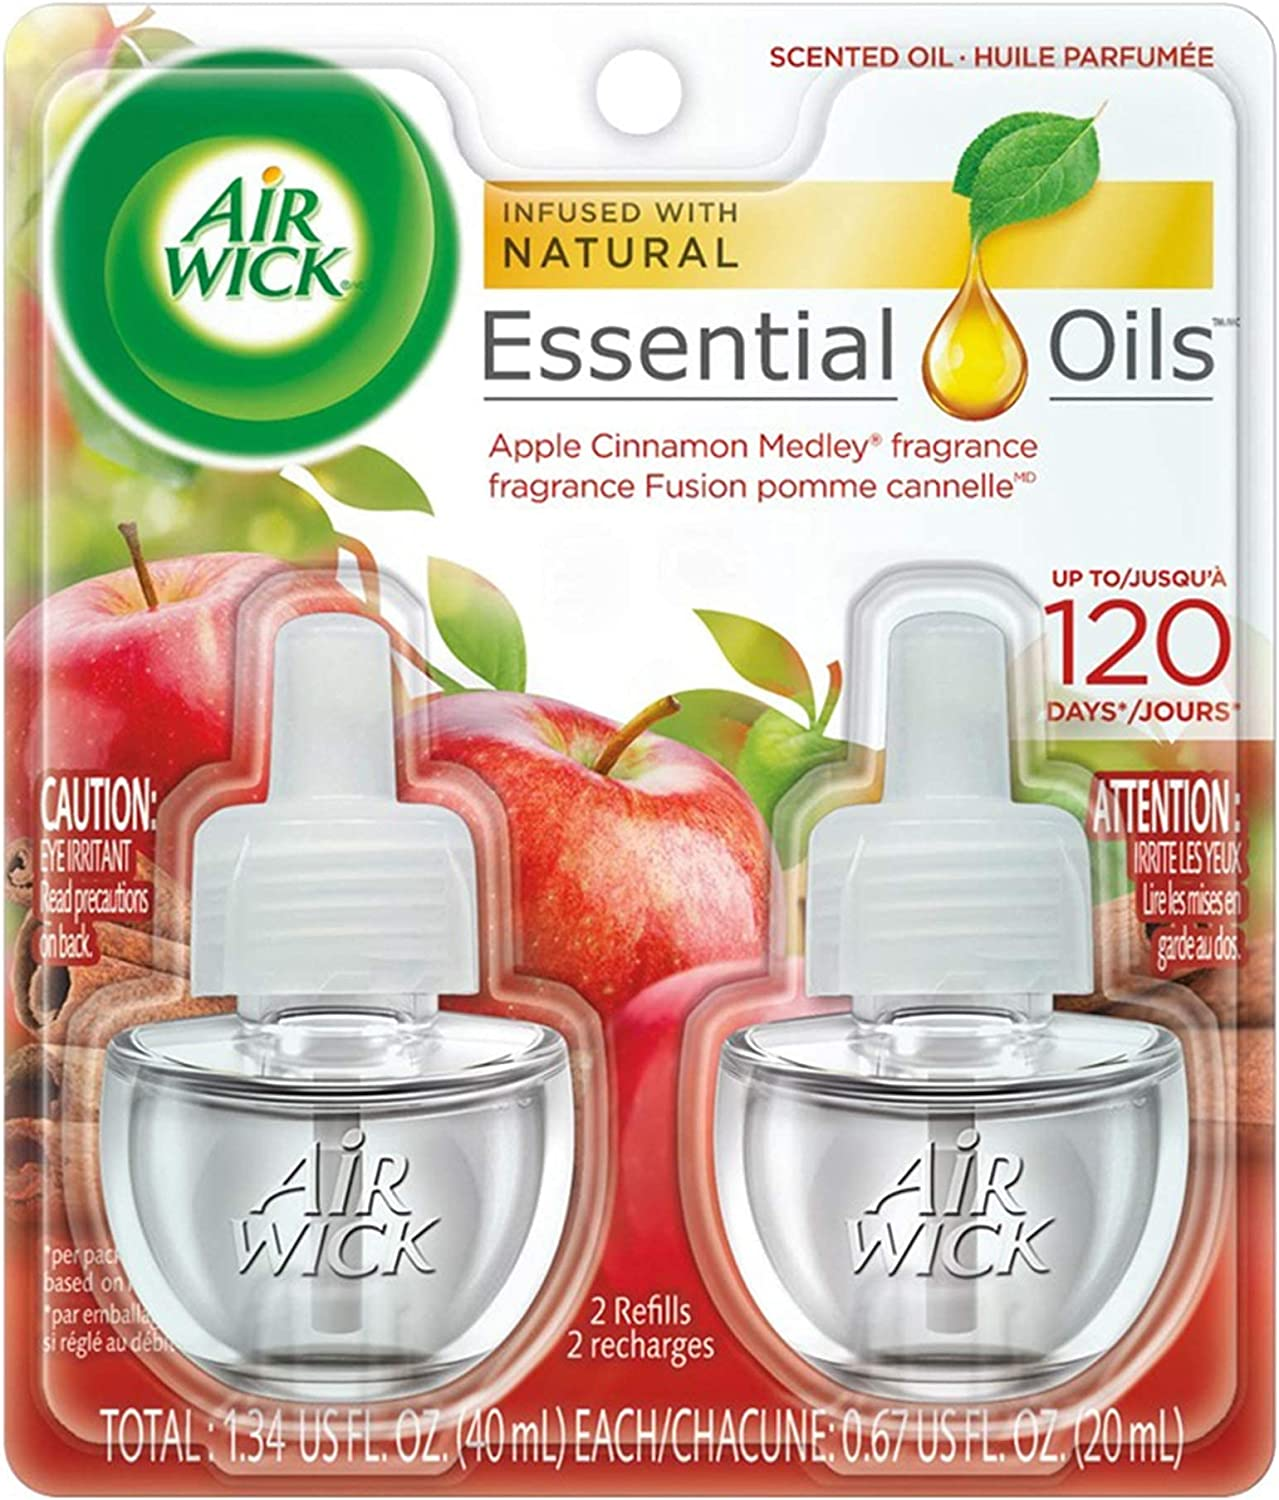 Air Wick plug in Scented Oil H Refills Medley 2 Cinnamon Apple Tampa Max 73% OFF Mall